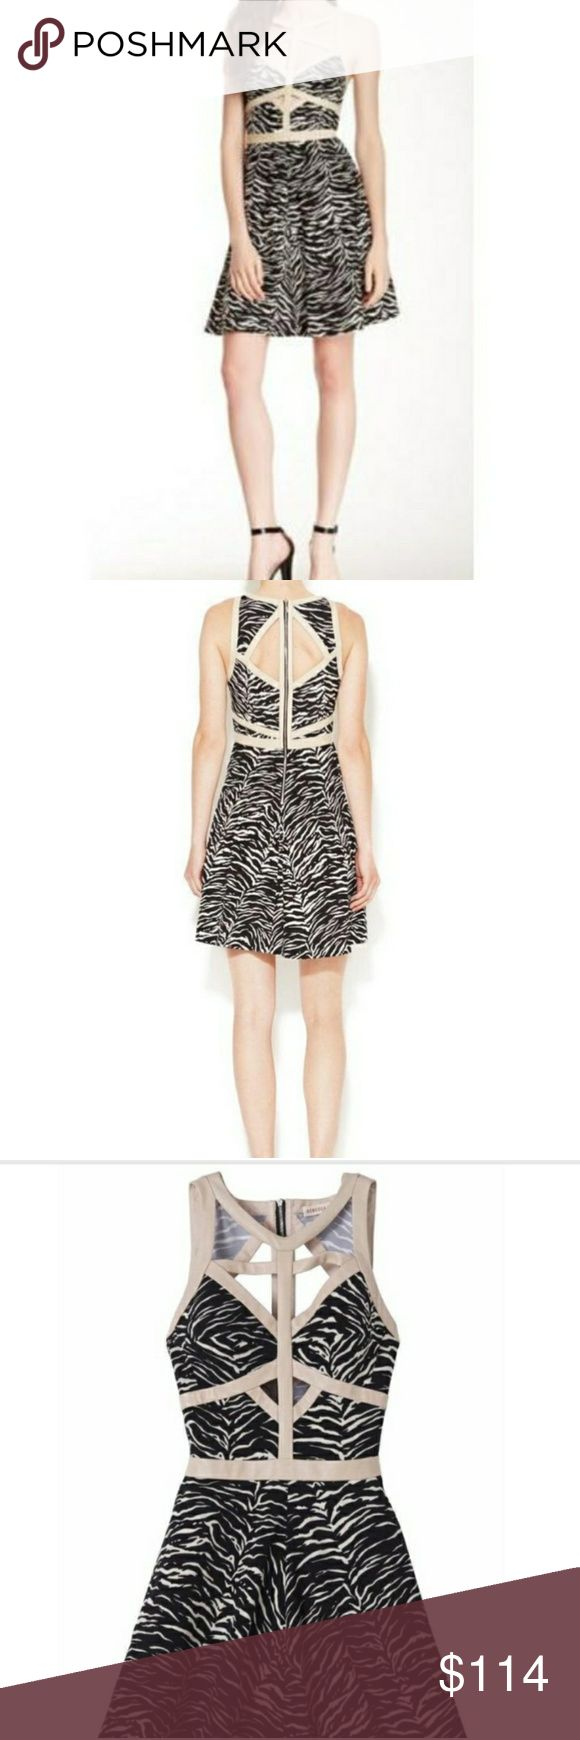 "Rebecca Taylor Leather Trimmed Cage Dress Order by noon Wednesday the 27th to receive by New Years Eve.   Fabulous black and white animal print dress is trimmed with contrasting leather that is a beige/pale pink tint. Cage neckline, open back, screams cool""! Reasonable offers are welcome!  Find more brand new designer clothes at 30-70% off at www.thecuratedcloset.net Use code POSH20 for 20% off at checkout on Curated Closet website Rebecca Taylor Dresses"